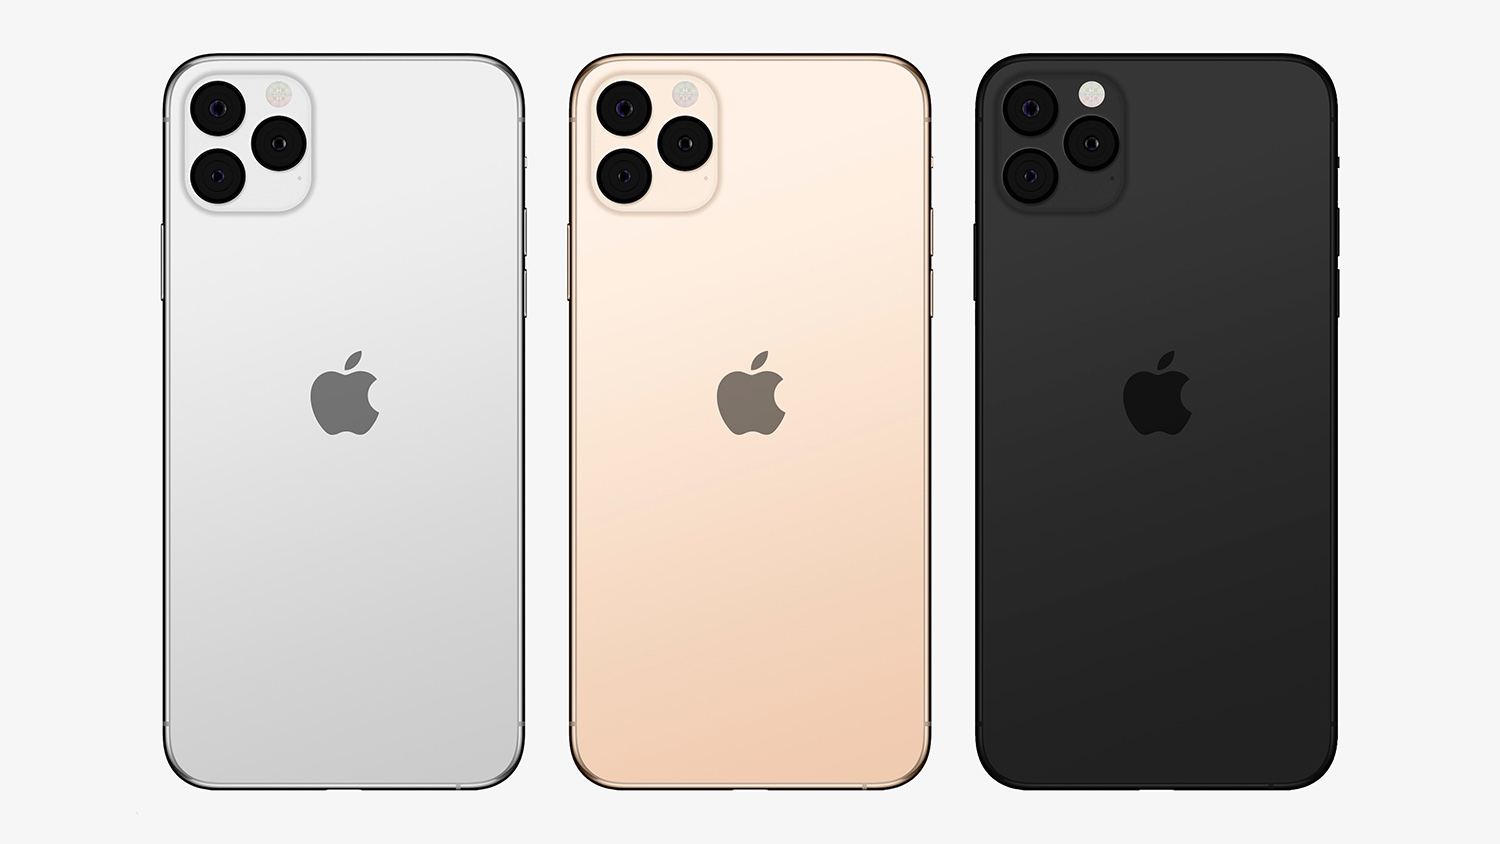 Le Logo On 2019 Iphones Will Be